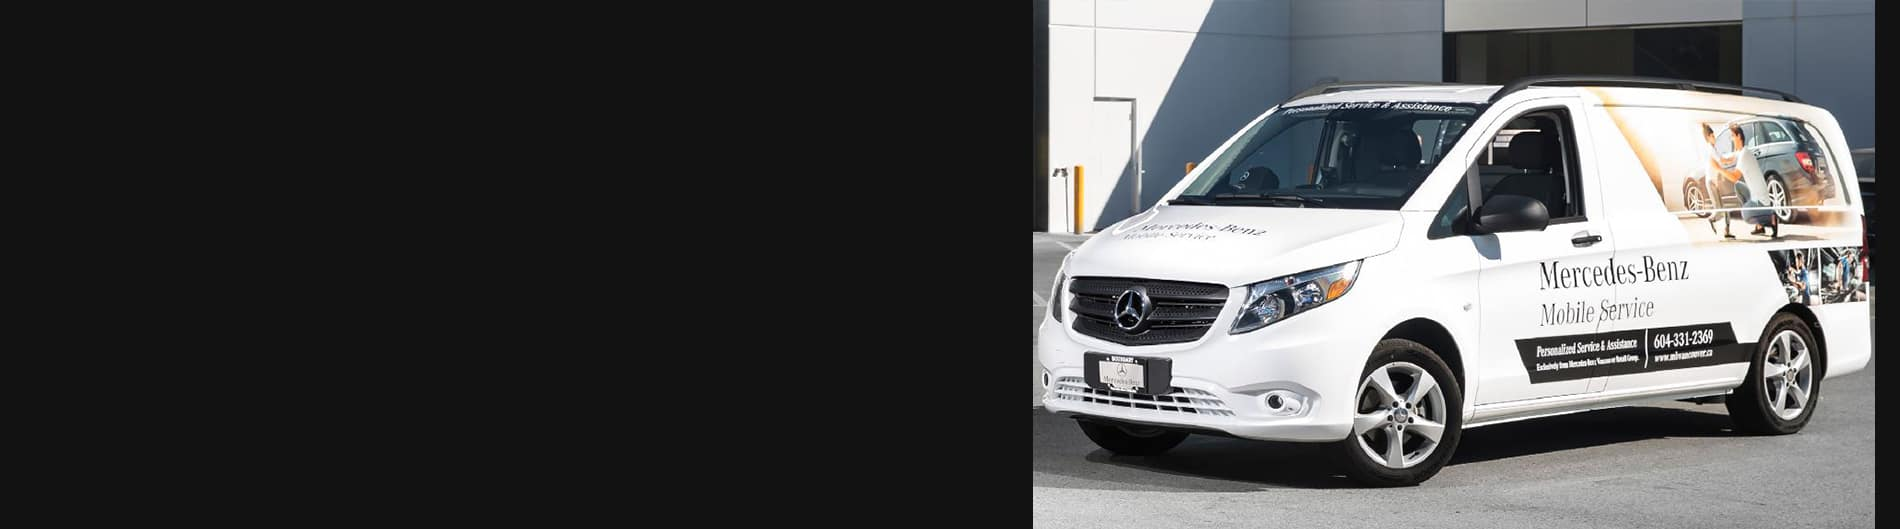 Mercedes Benz Mobile Service For Passenger Cars U0026 Metris.